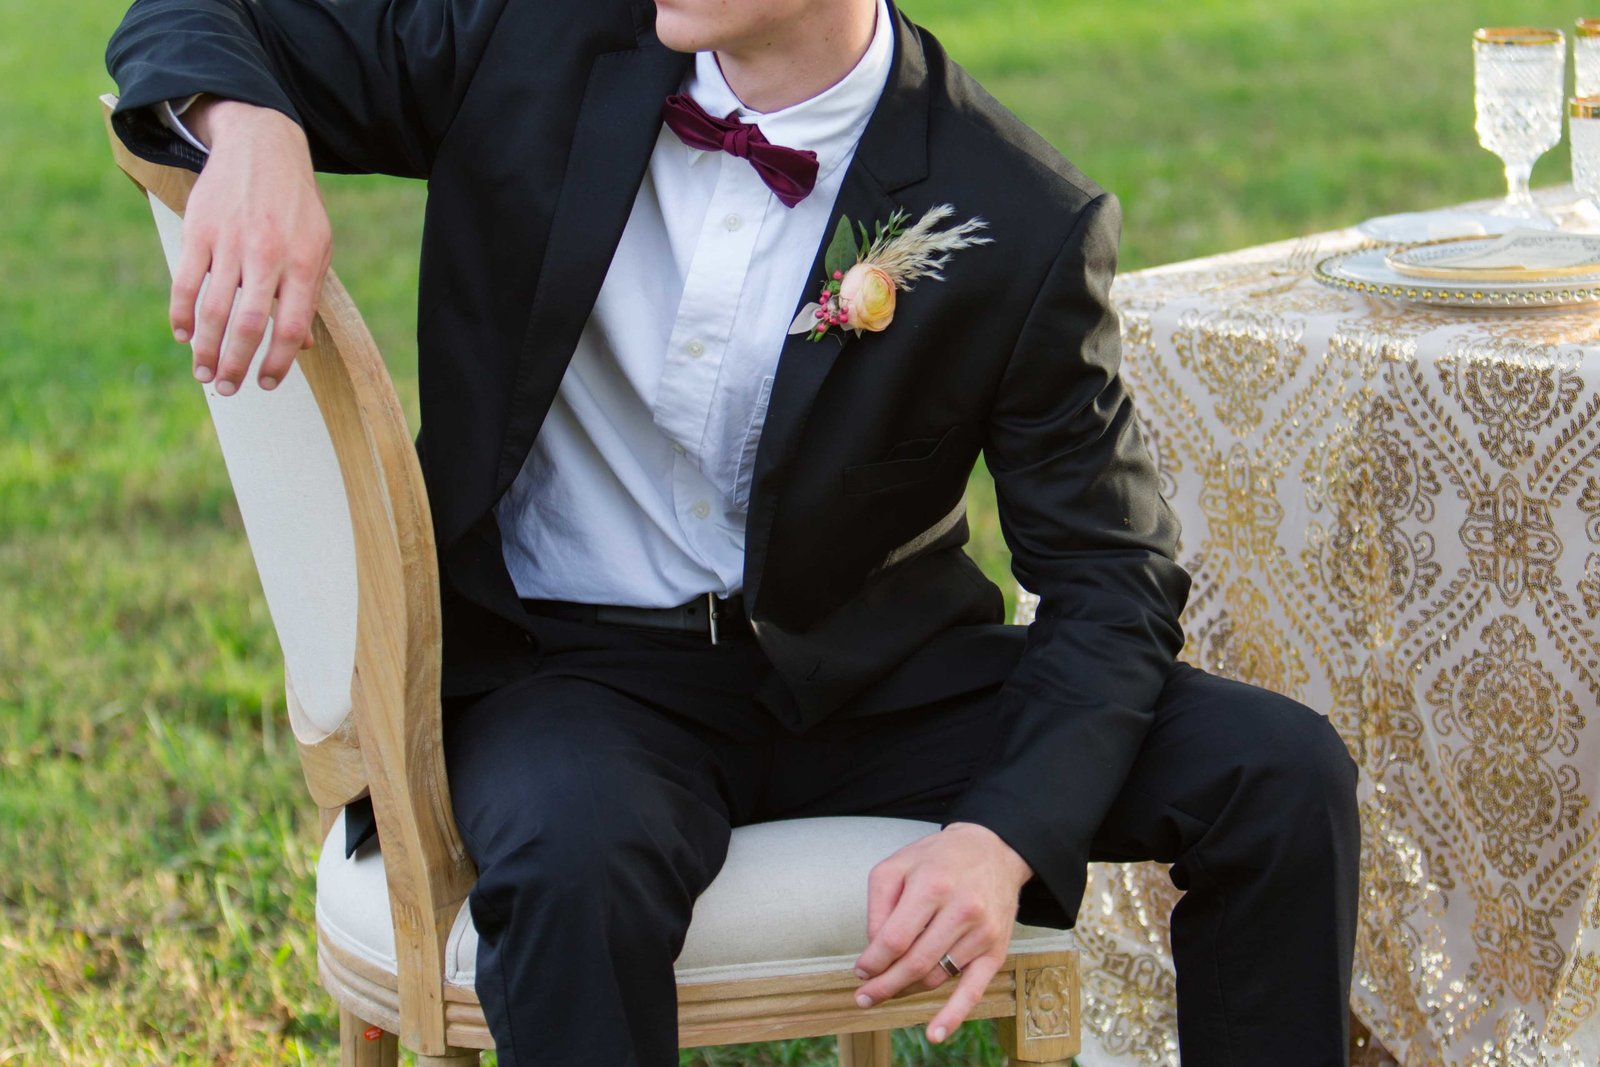 Great gatsby groom details with bowtie and boutonniere